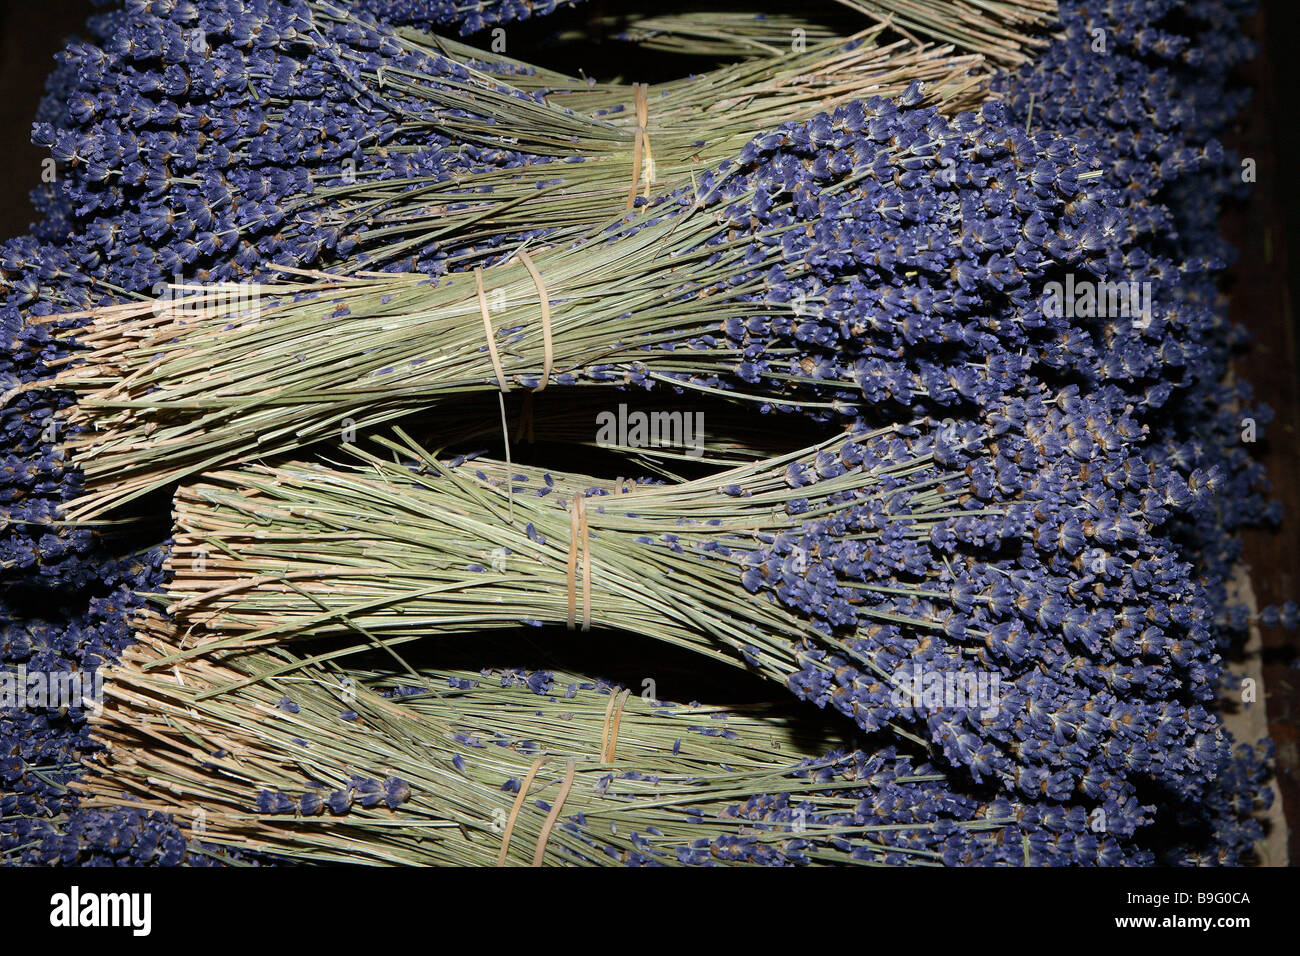 Lavenders focused dried plant lavender-bouquets bloom fragrantly ethereally symbol scent aroma lavender-scent body - Stock Image